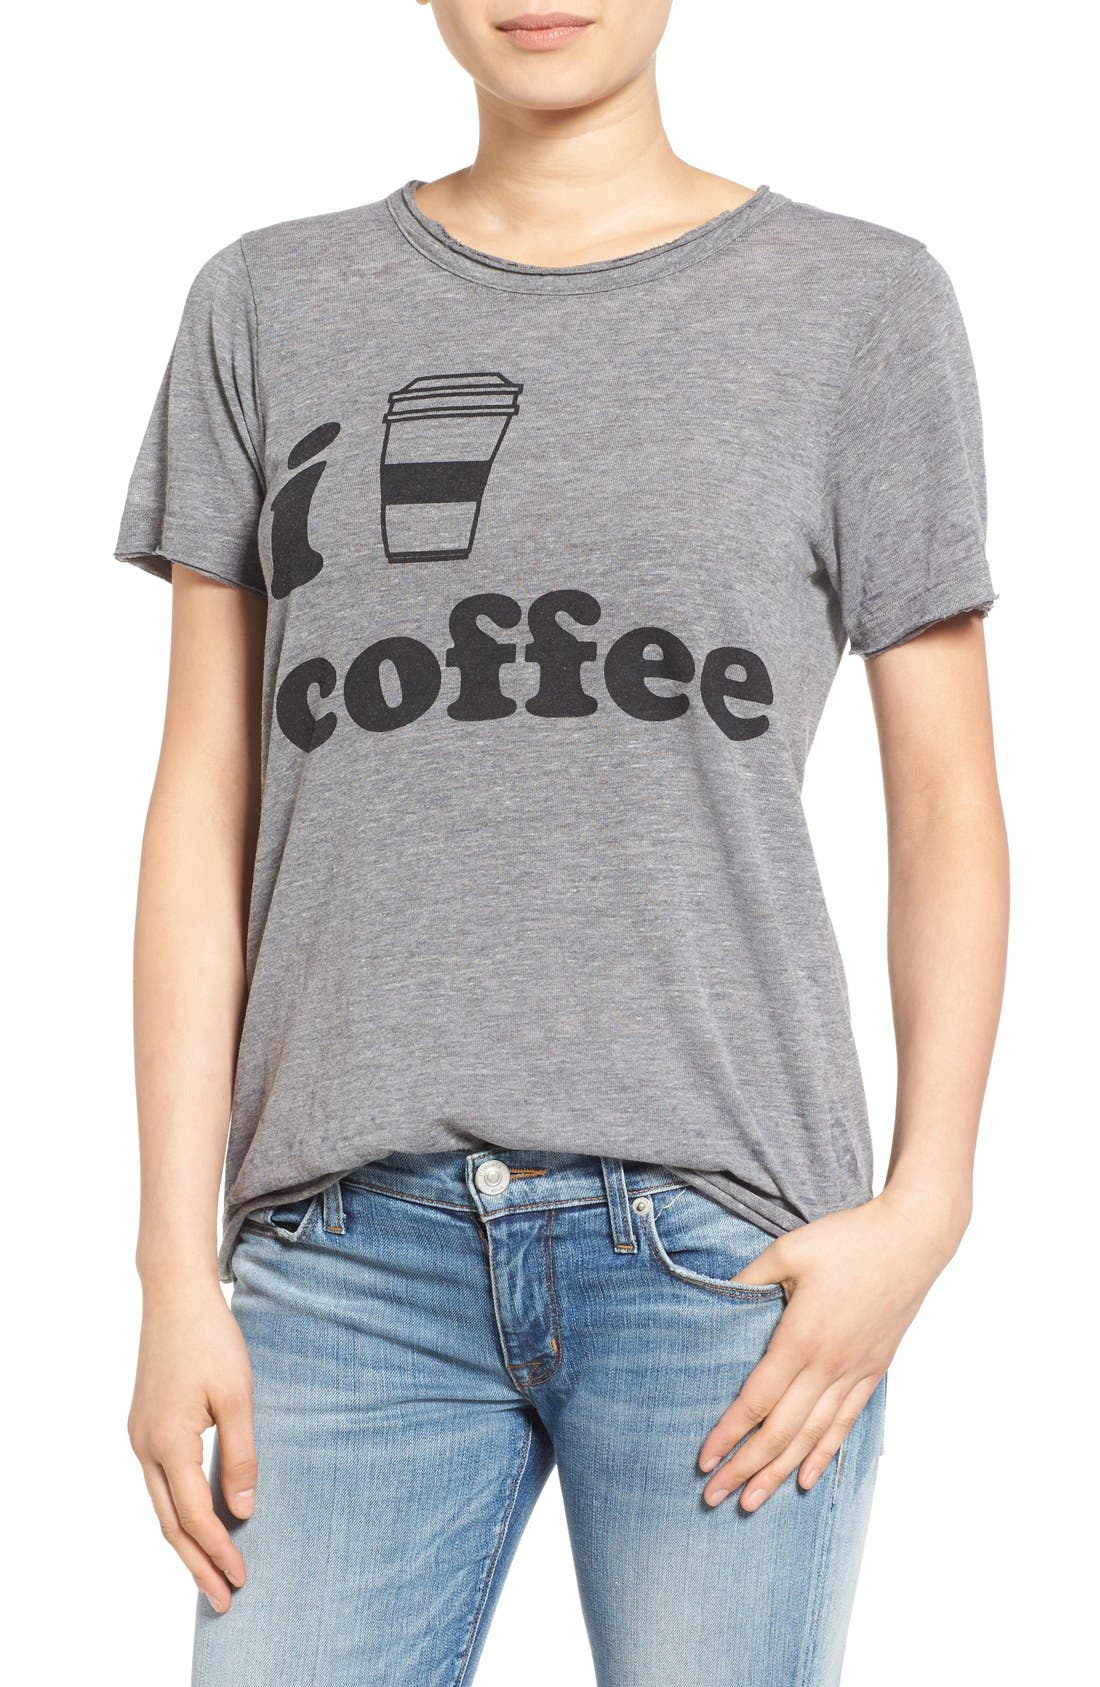 Alternate Image 1 Selected - Chaser Coffee Graphic Tee